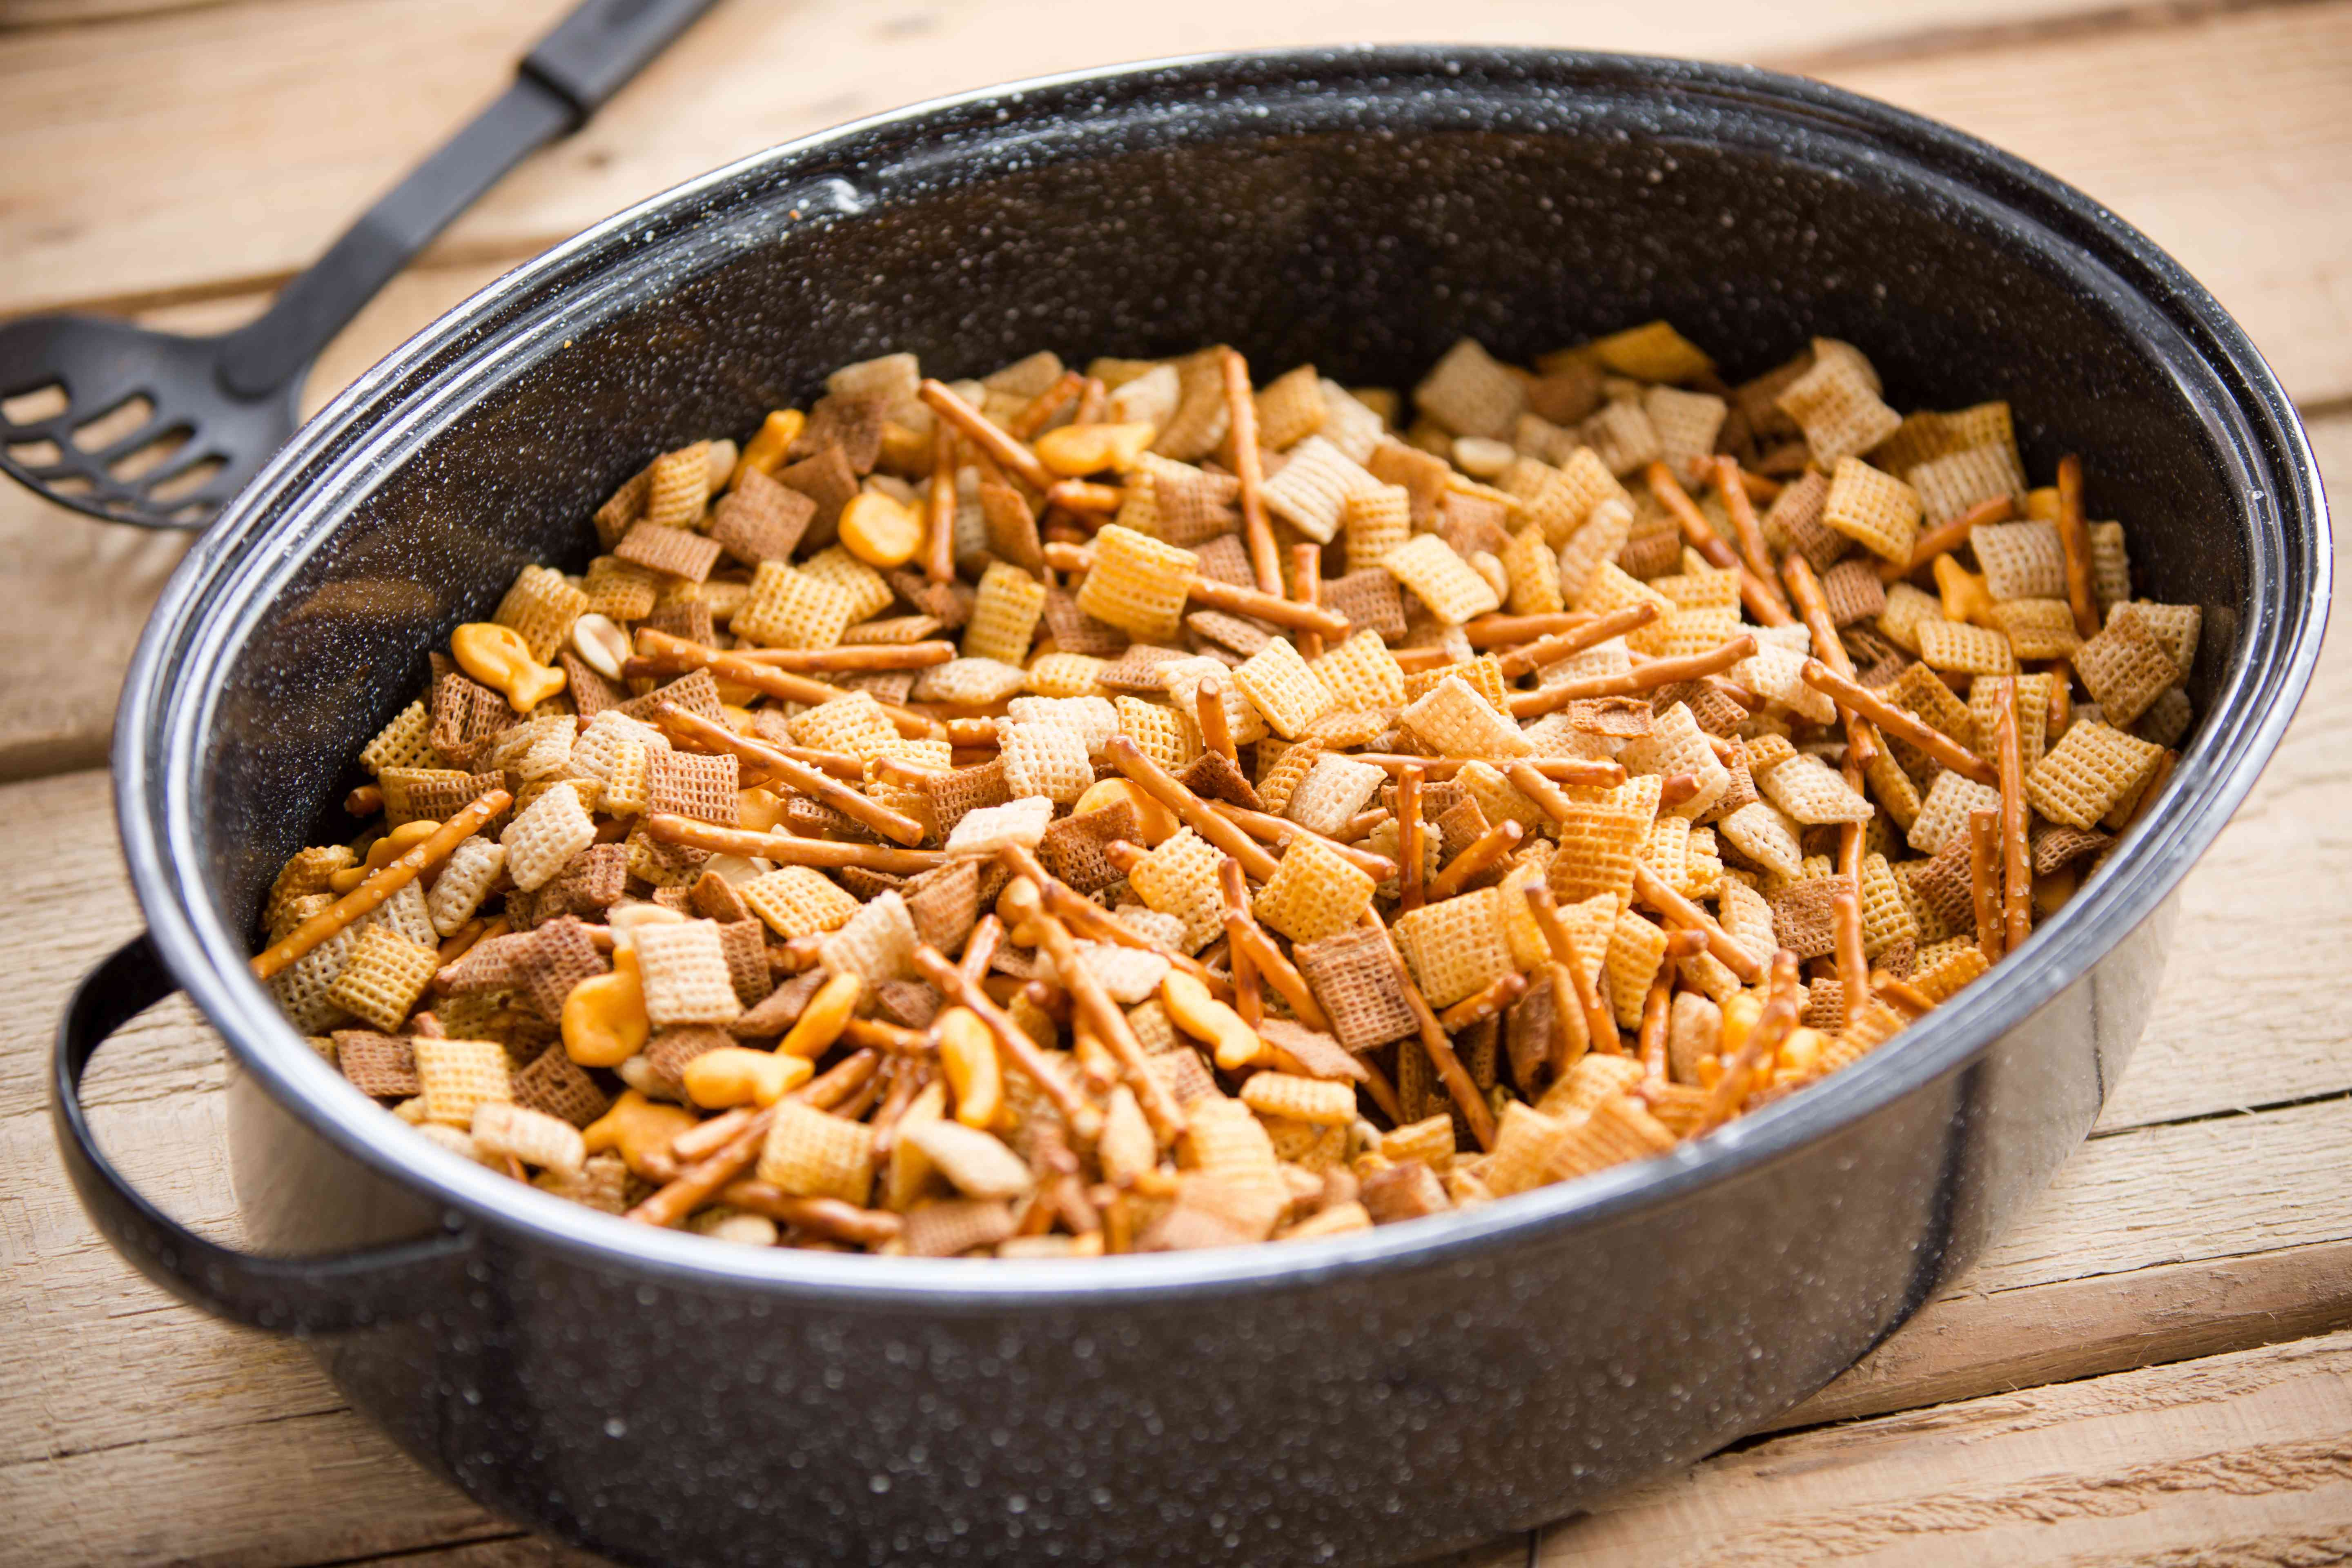 Roaster pan on table full of chex party mix